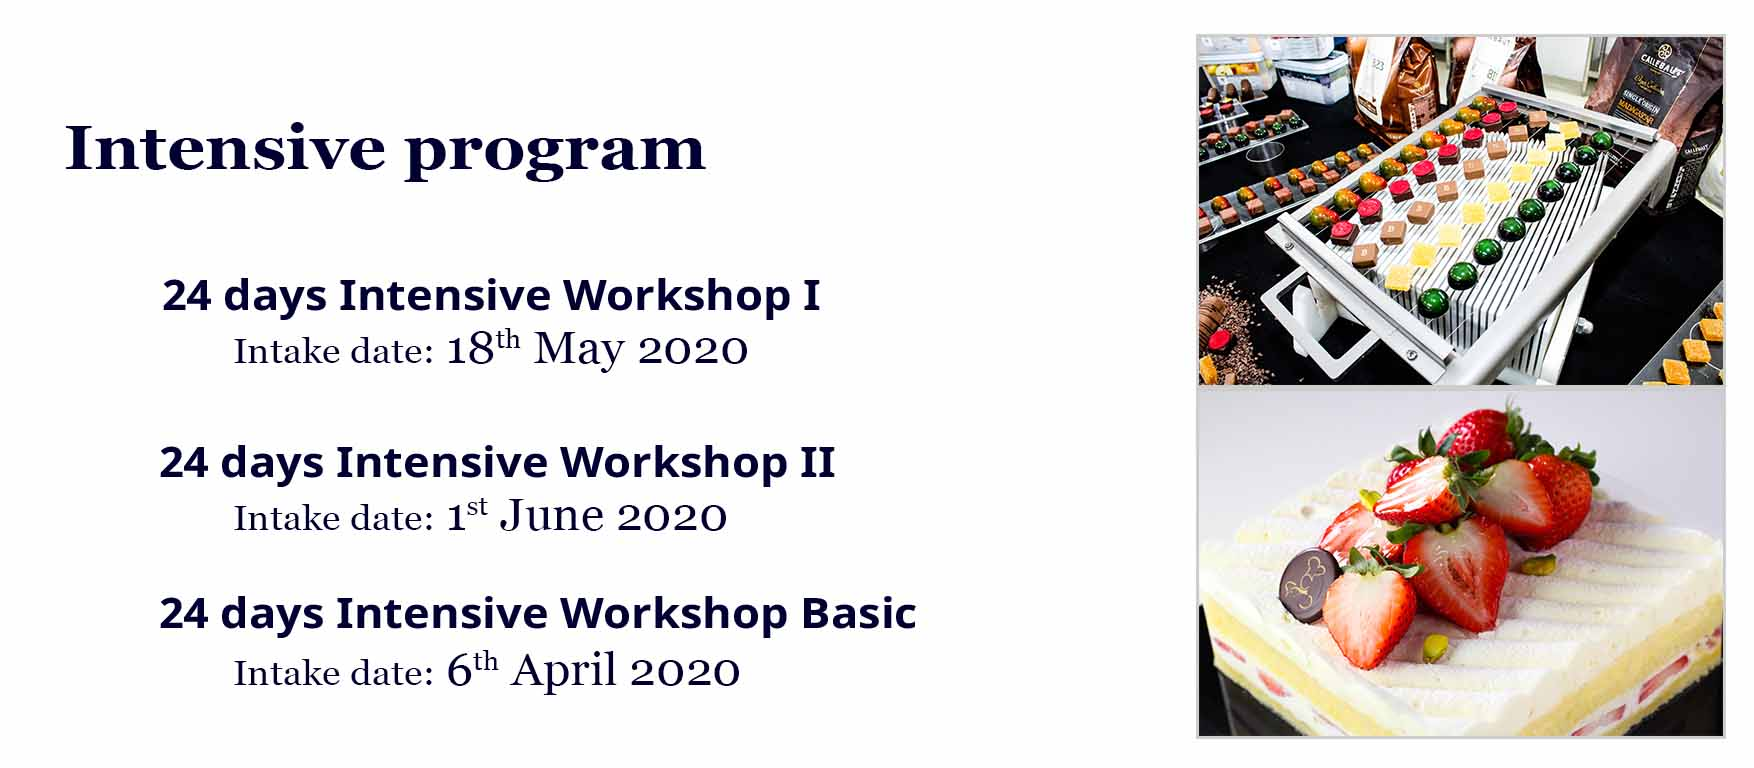 may2020intensiveprogram